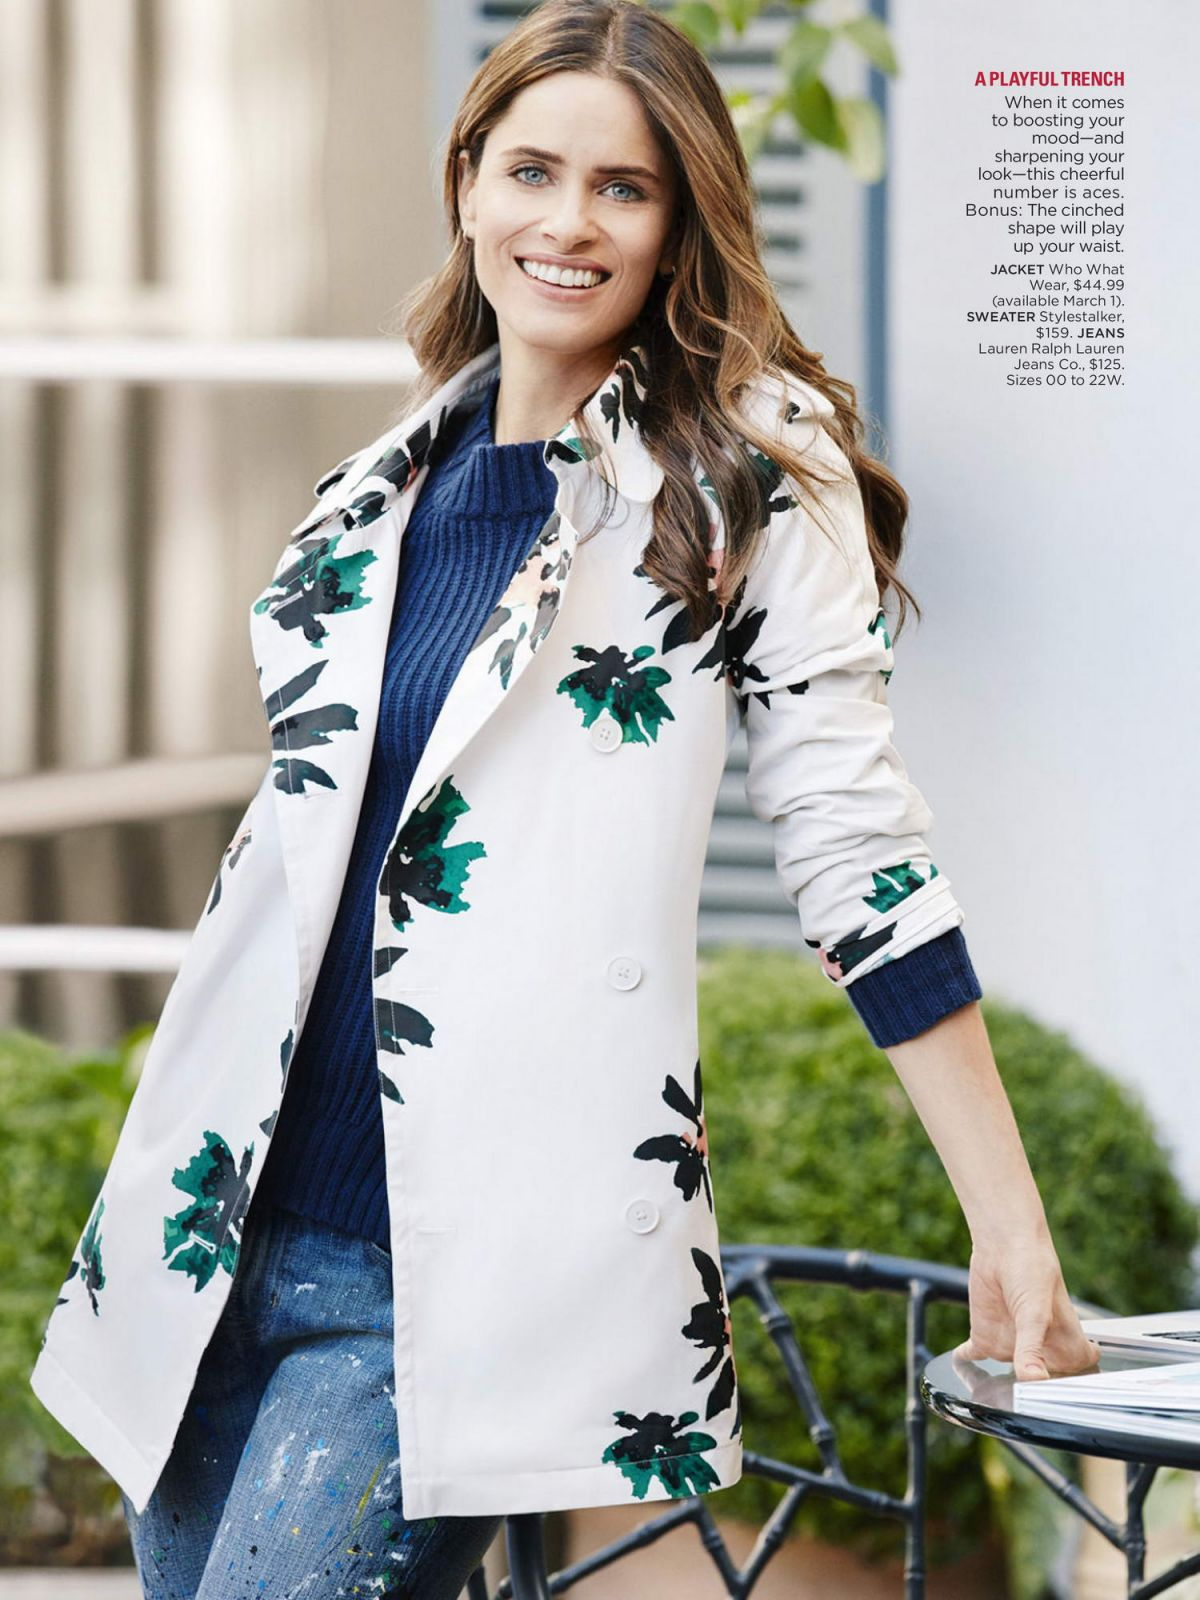 AMANDA PEET in Redbook Magazine, March 2016 Issue